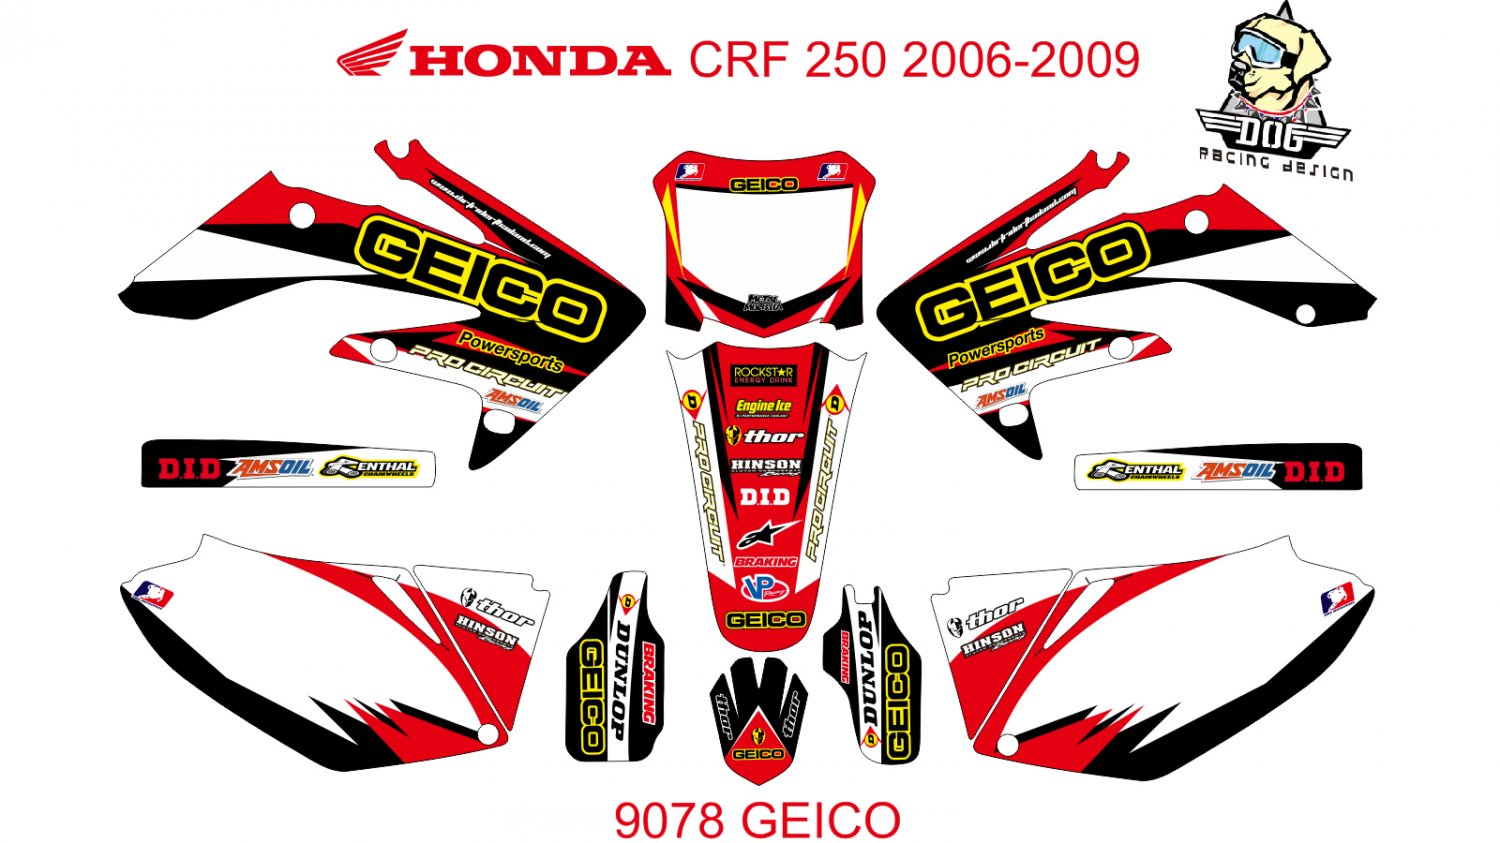 HONDA CRF 250 2006-2009 GRAPHIC DECAL KIT CODE.9078